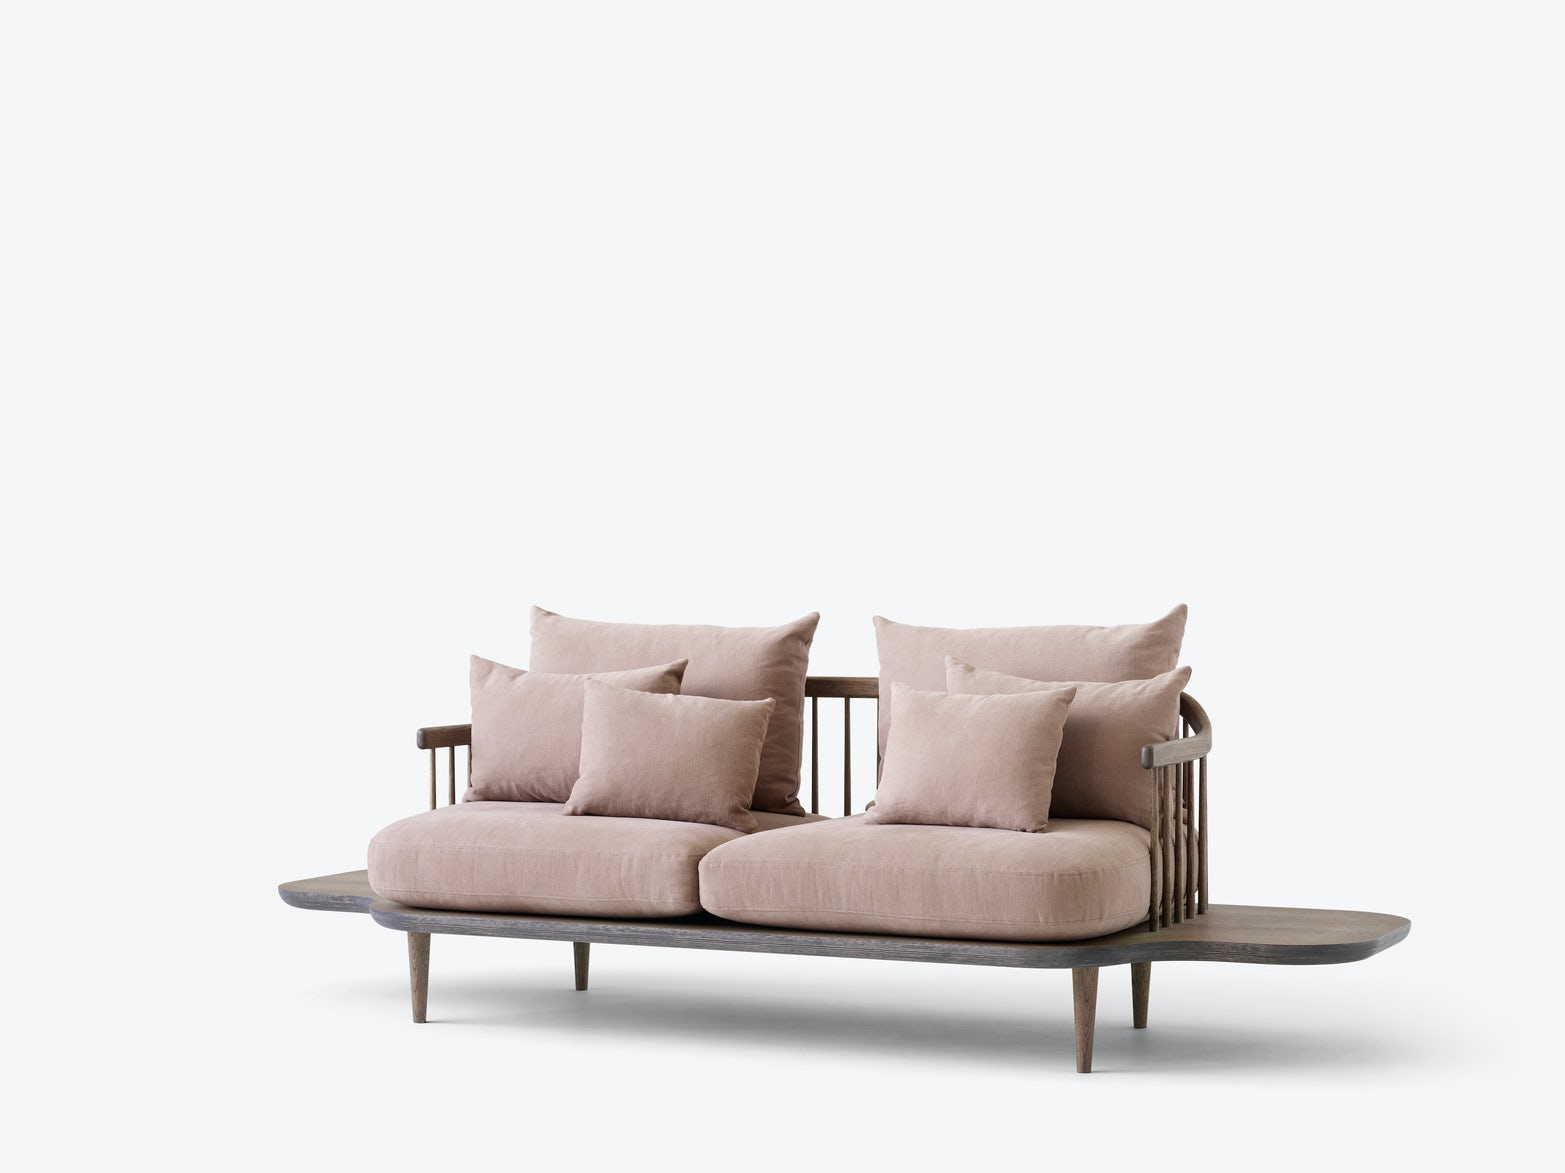 Fly sofa SC3 space copenhagen and tradition 11